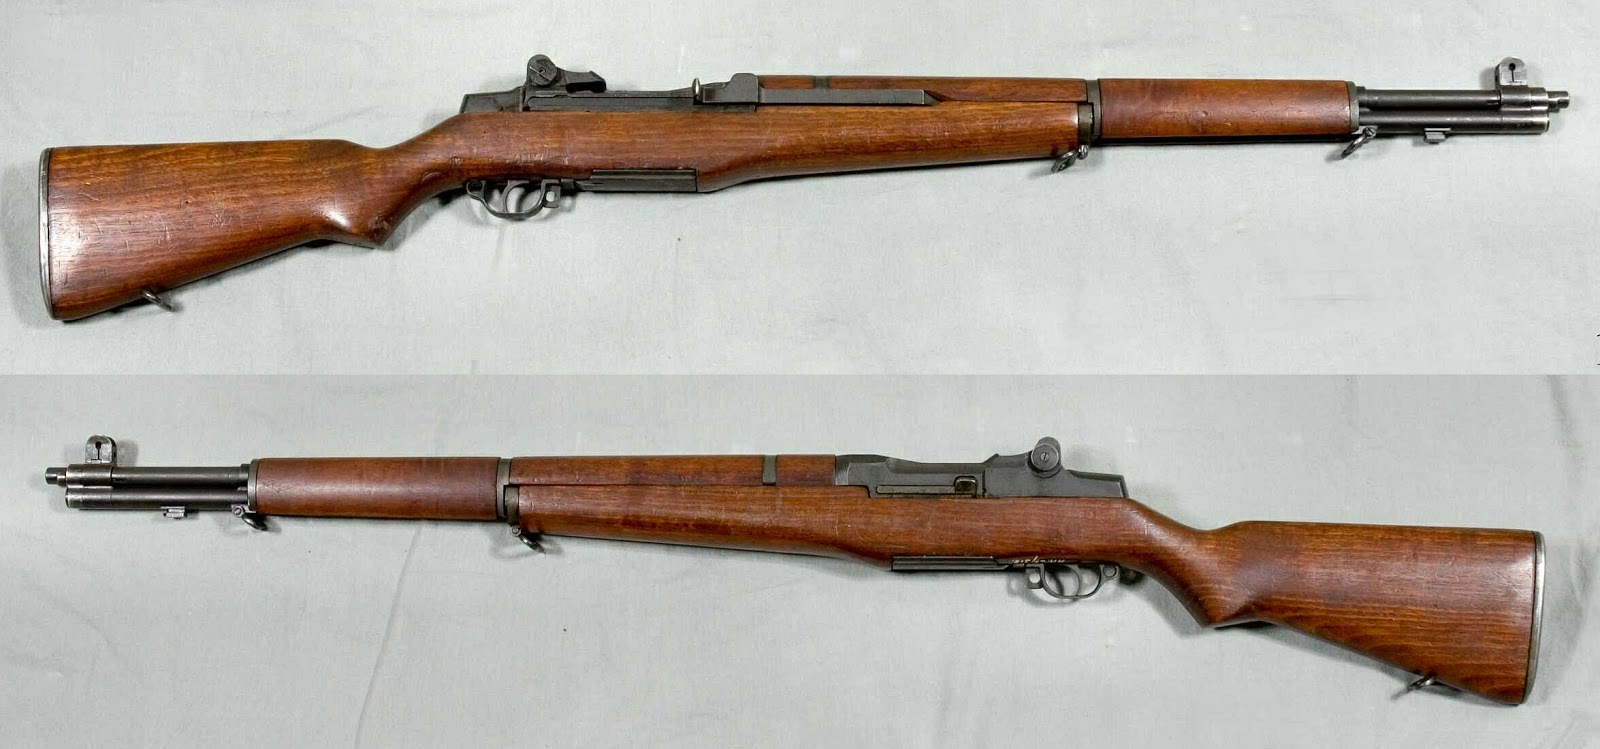 THE M1 GARAND RIFLE [<b>WEAPON</b> OF